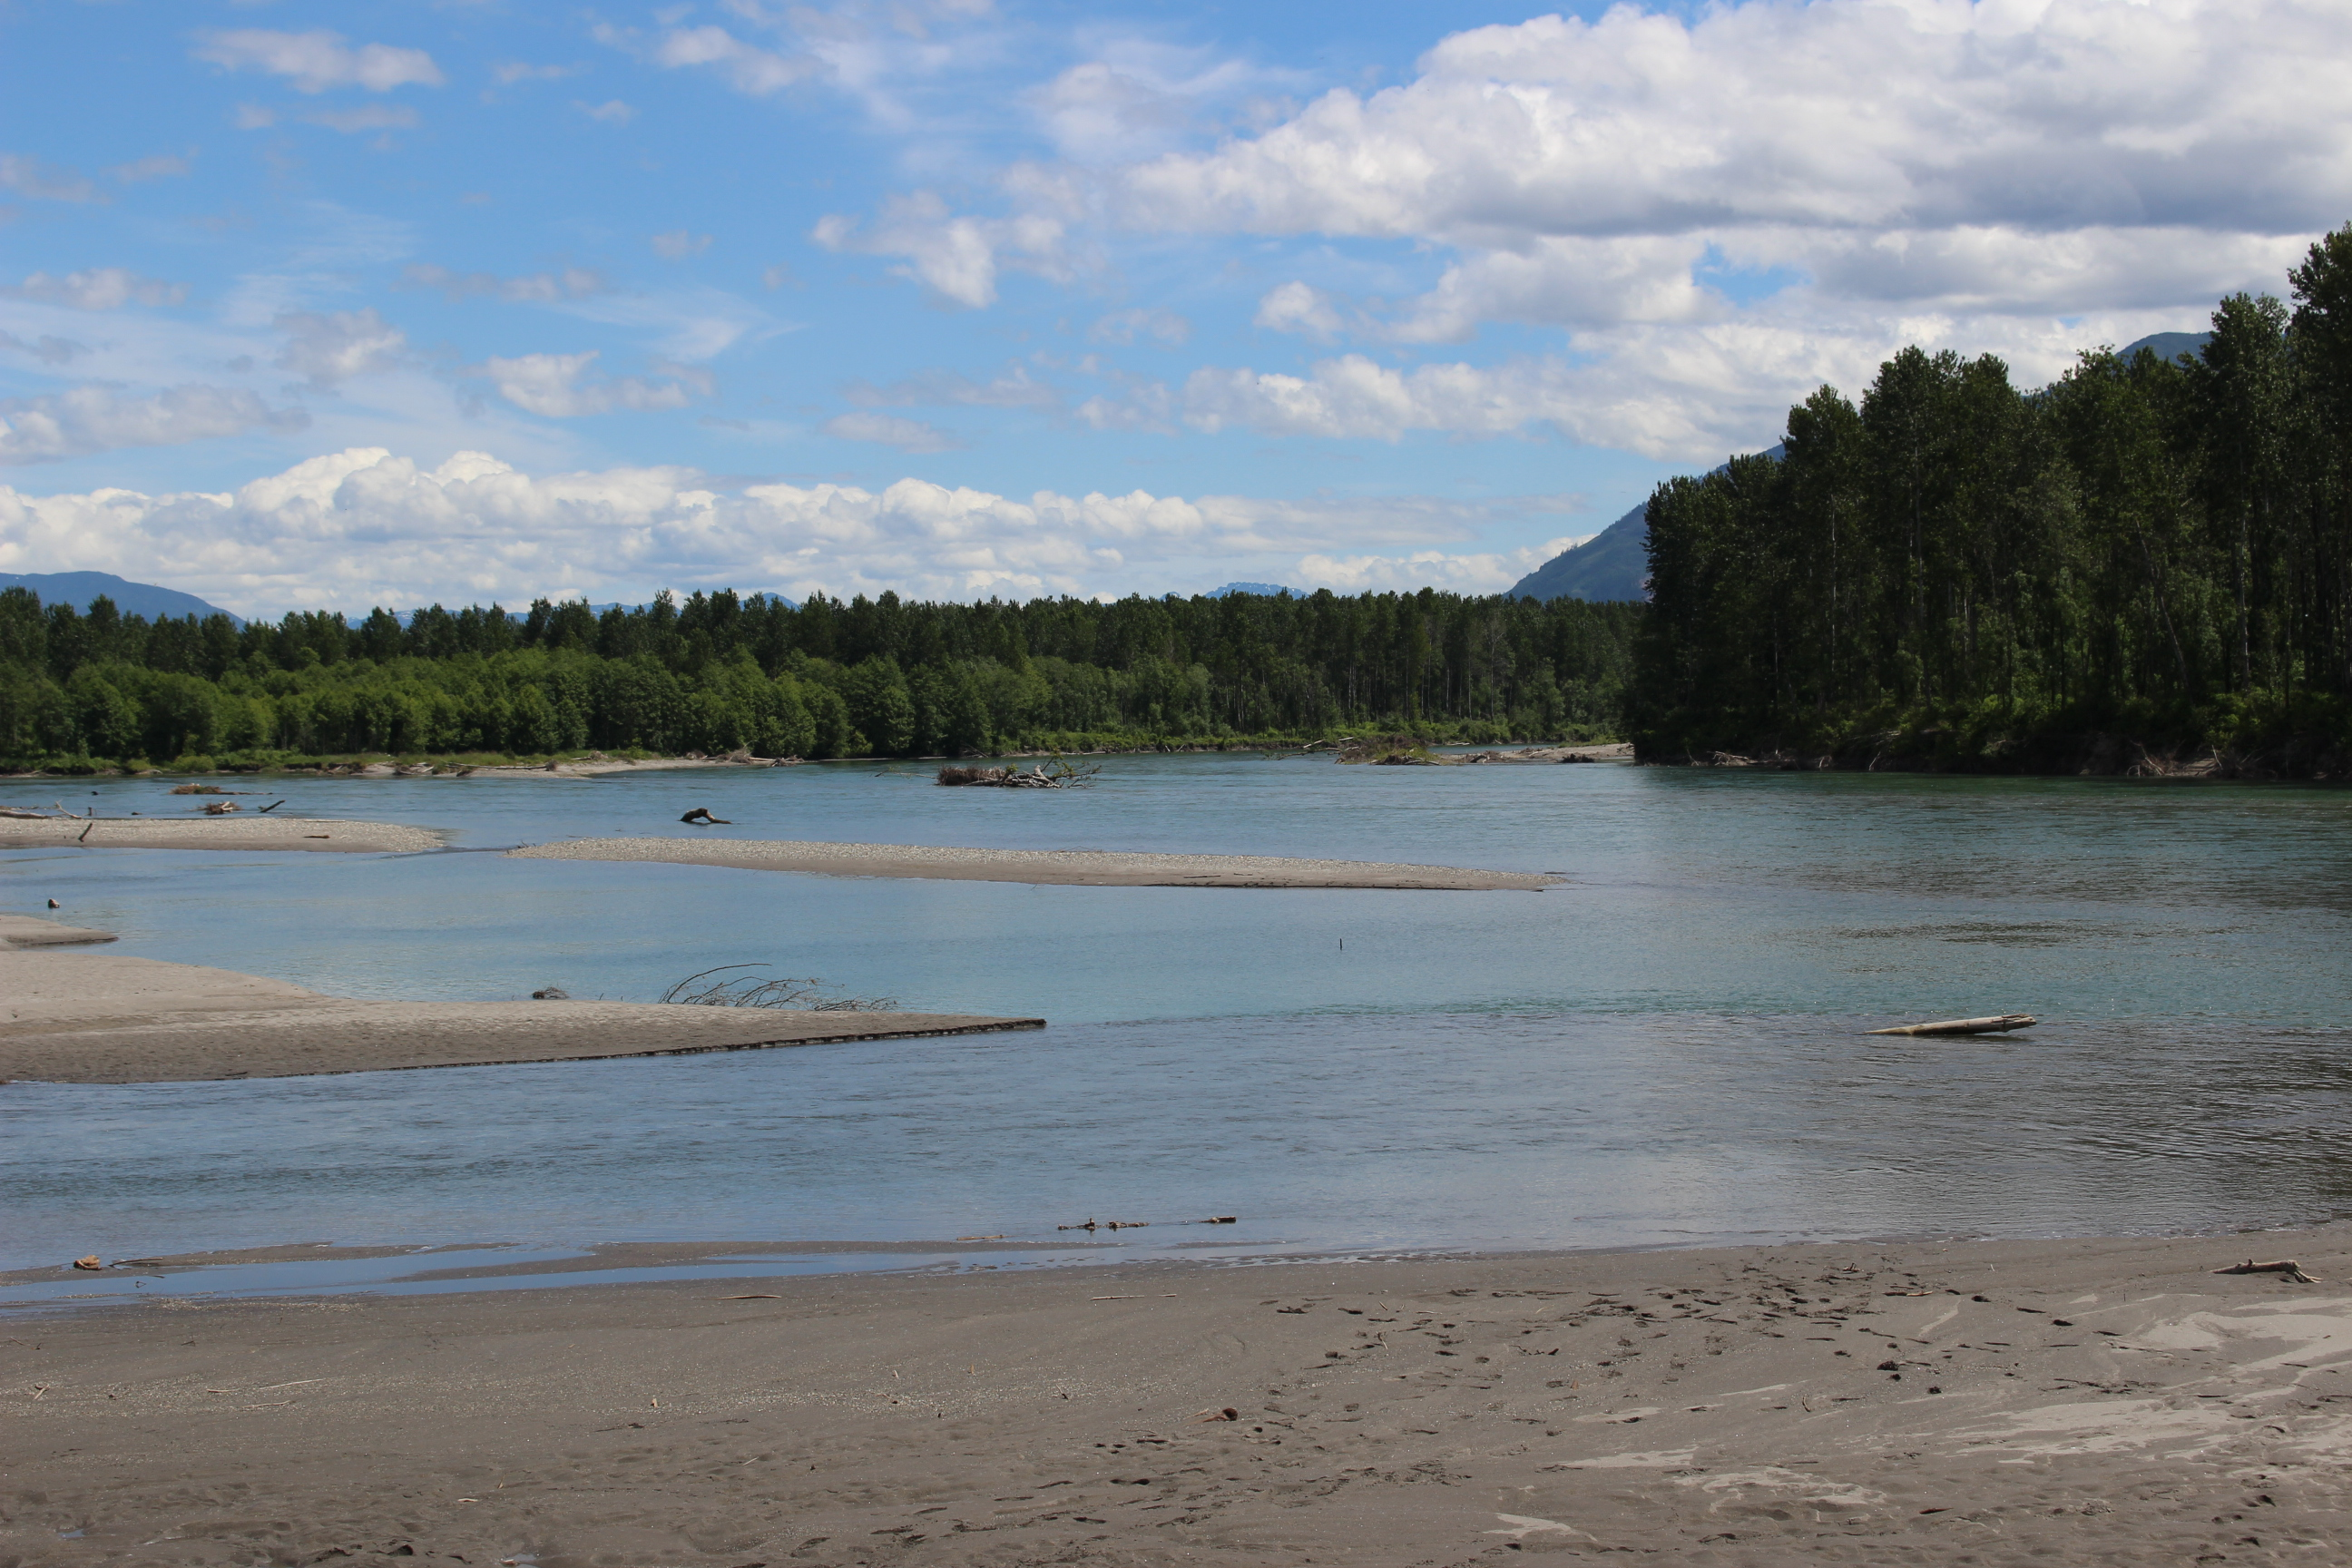 View of the Skagit River looking upstream, June 2018. Photograph credit: NCI staff.